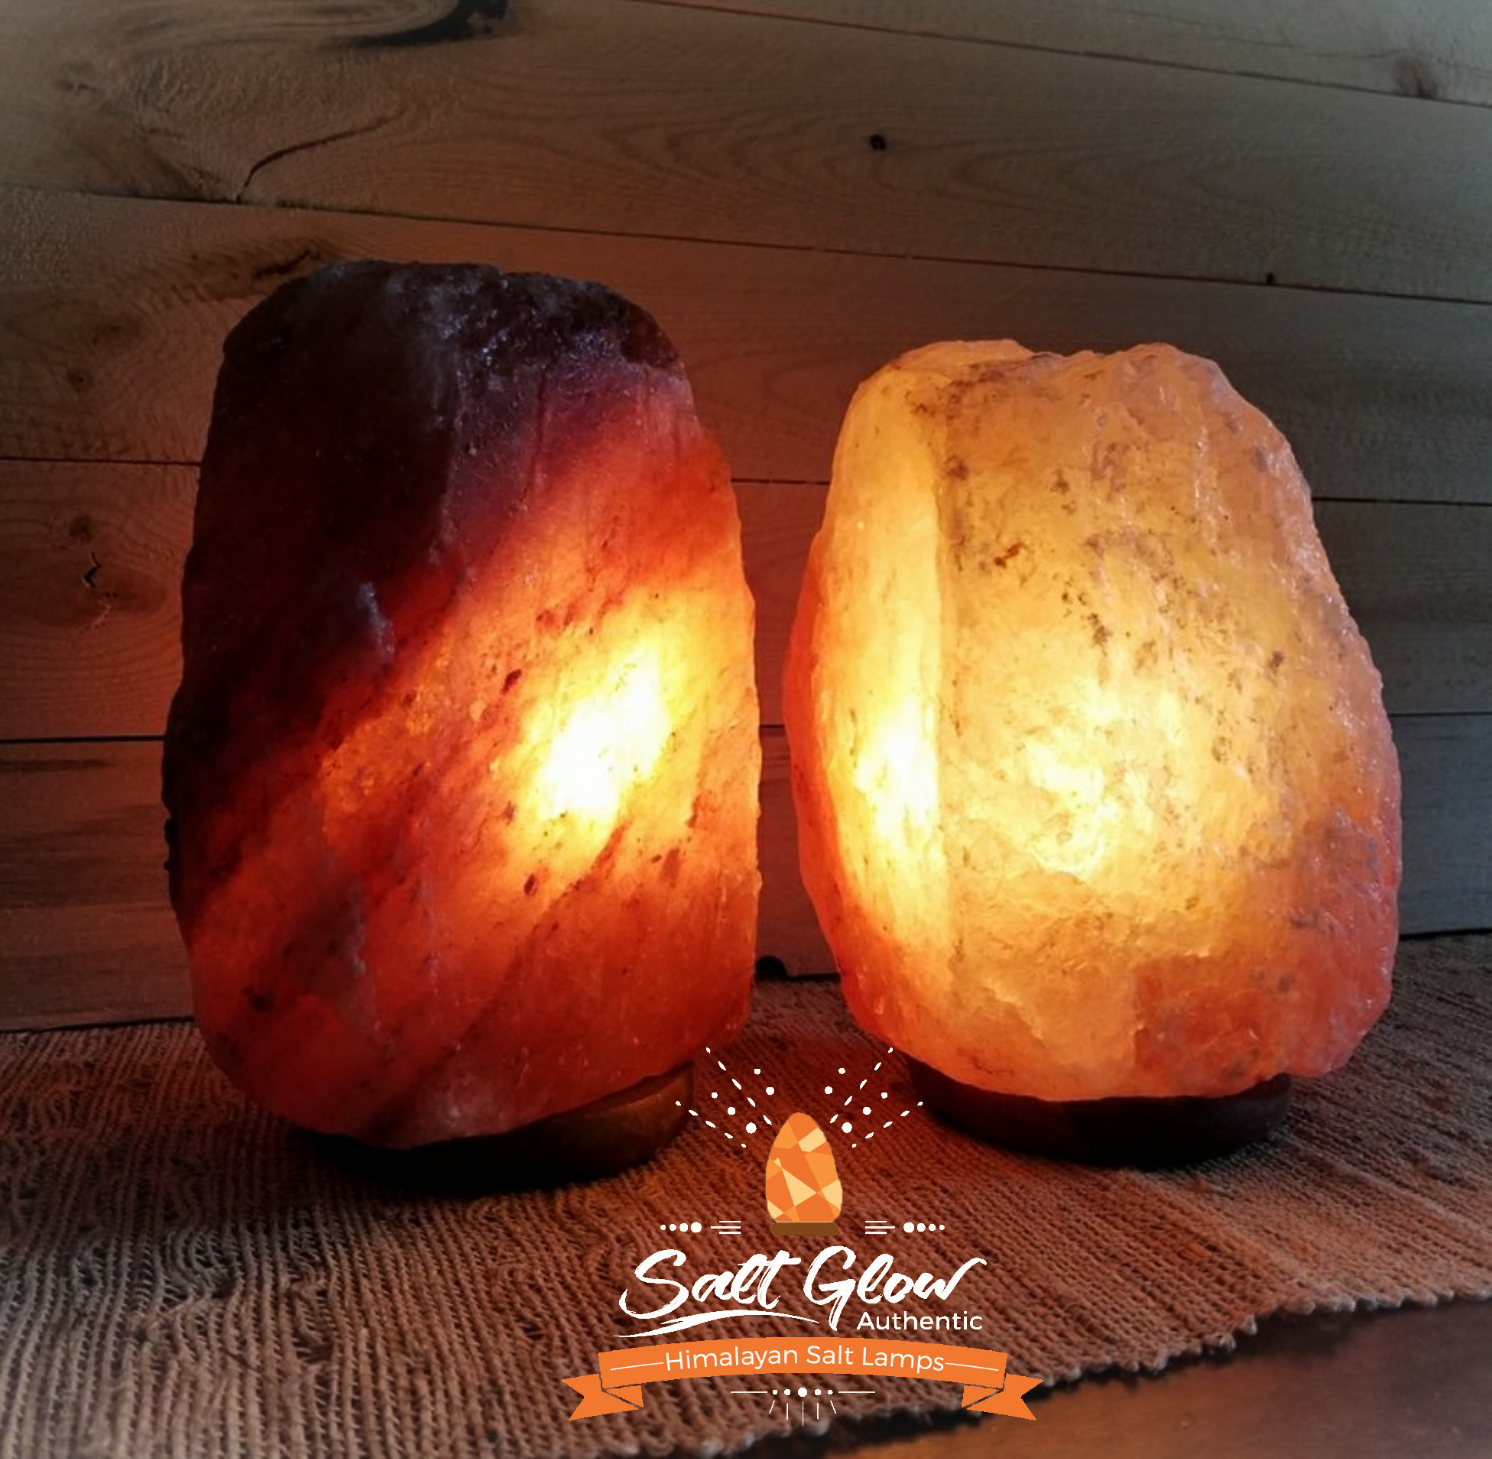 Deep Amber and pink Himalayan Salt Lamp on table